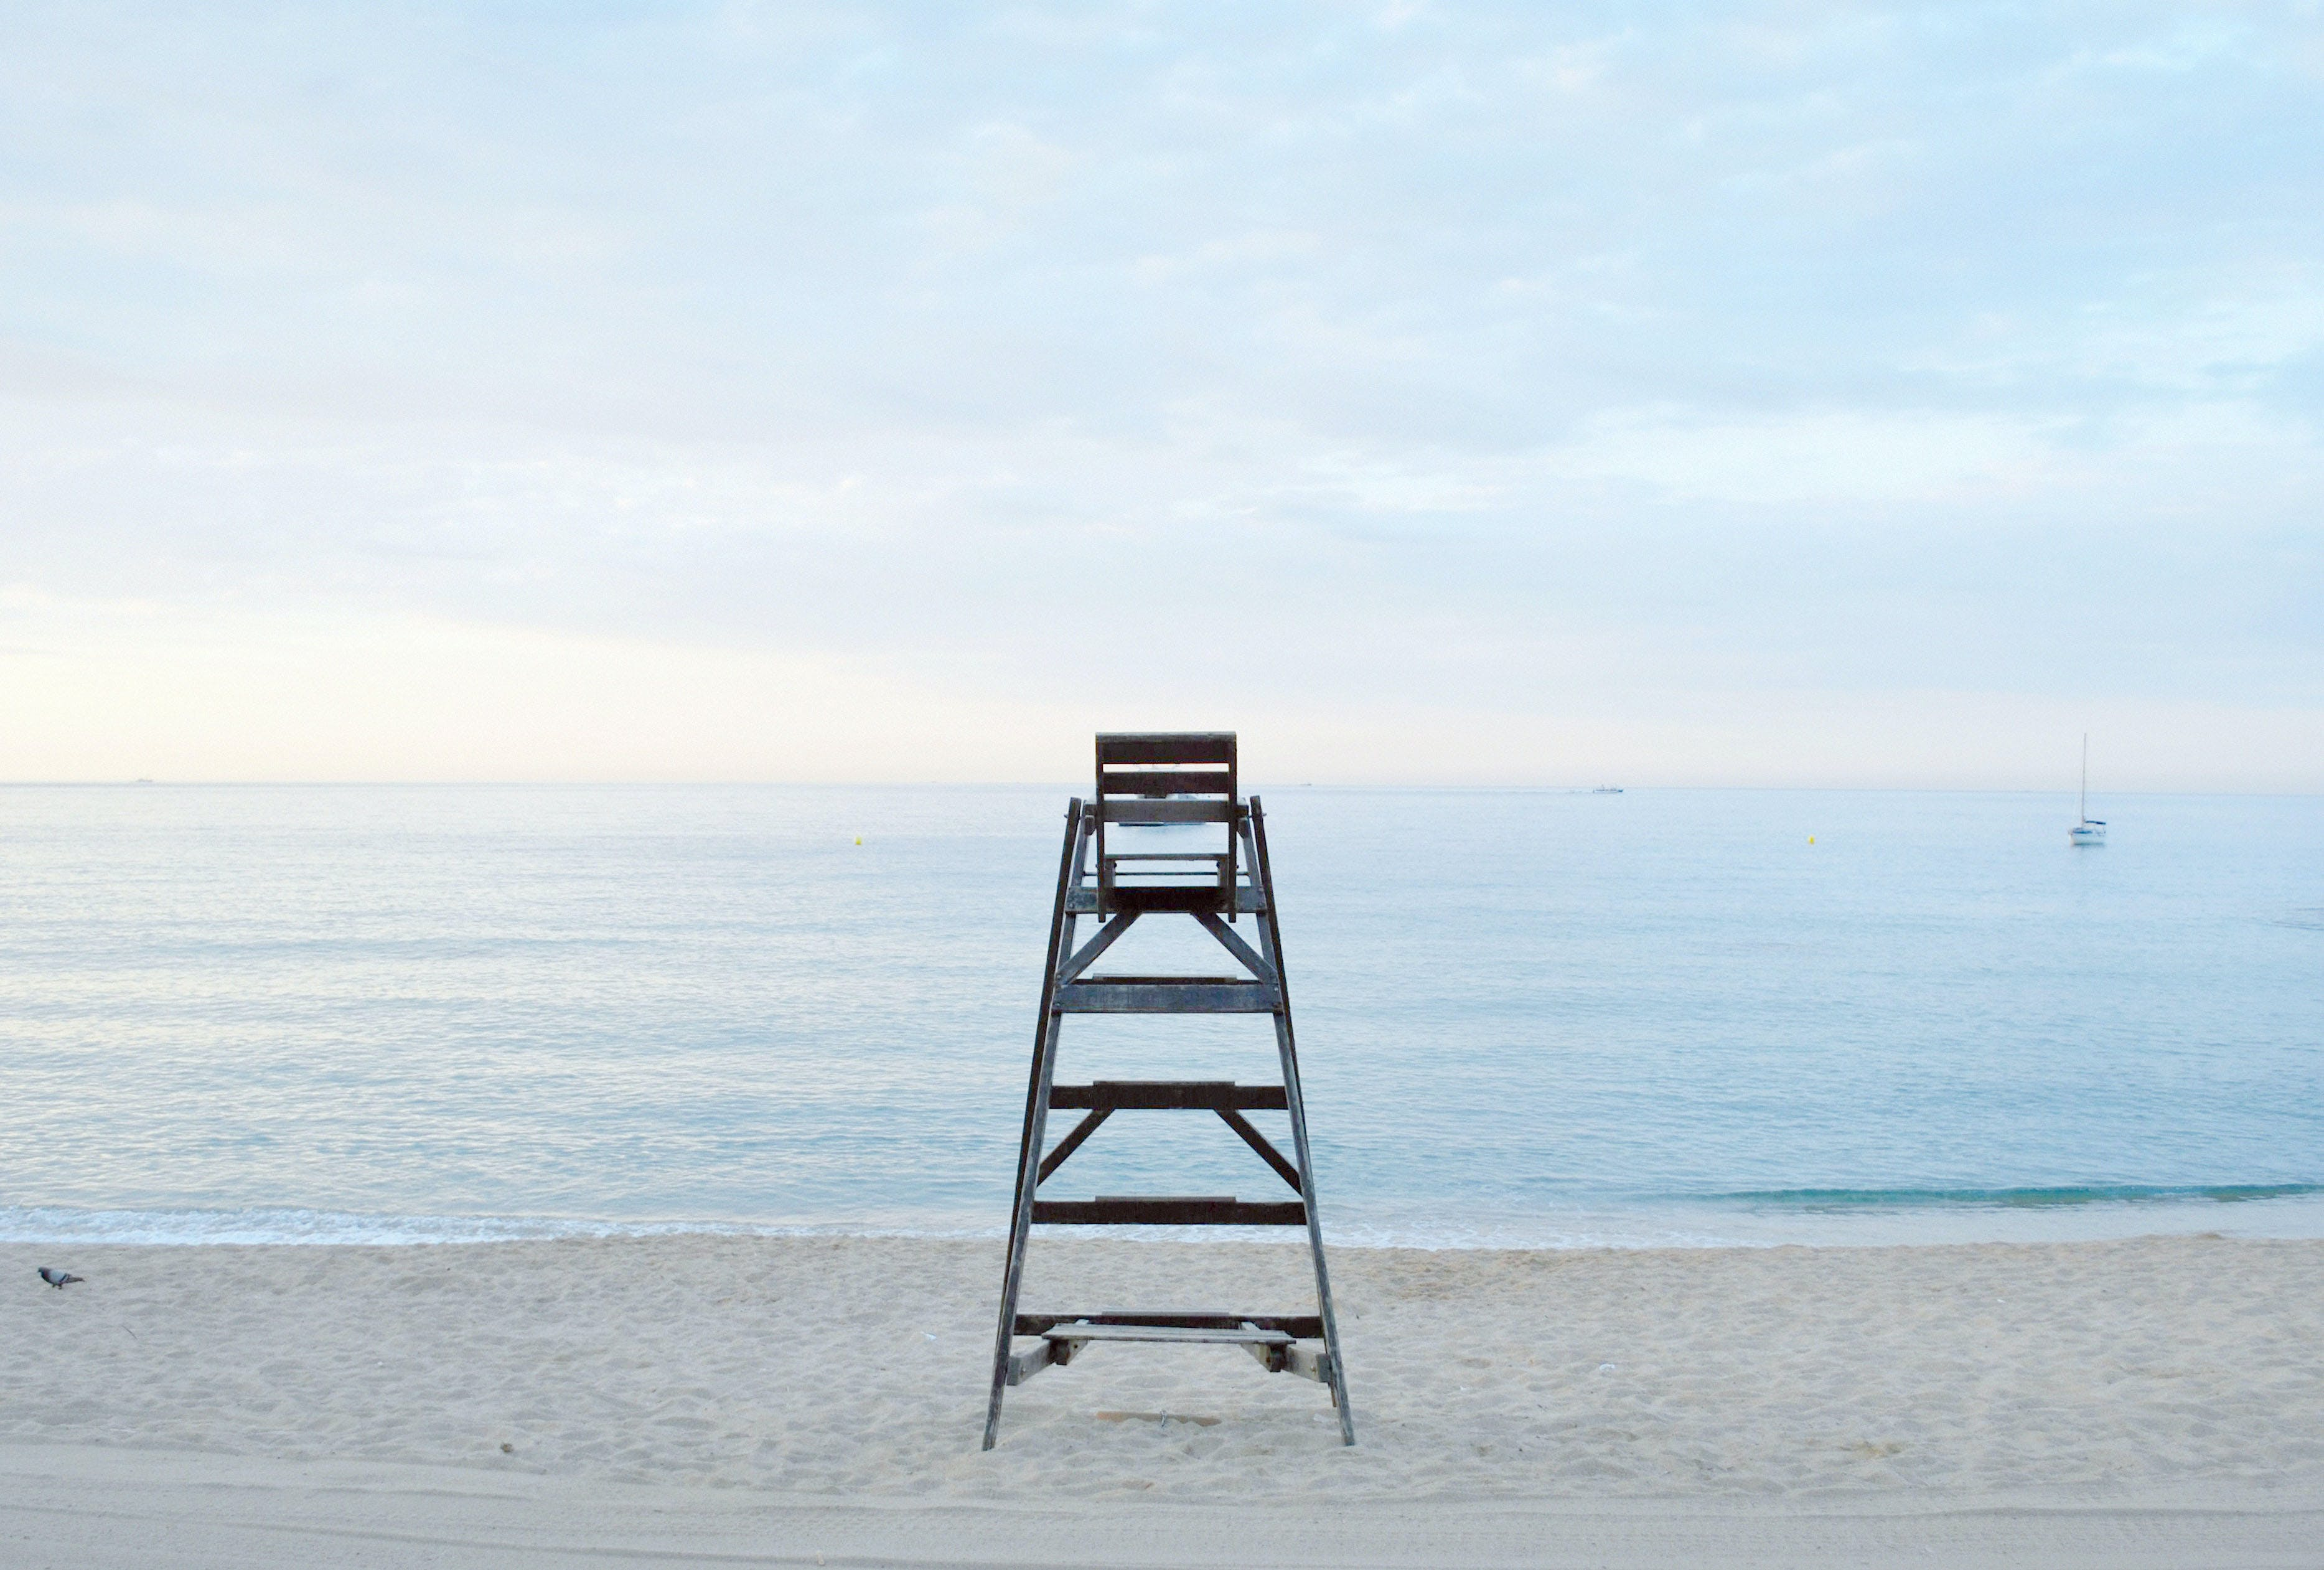 Grey Metal Step Ladder Near Beach during Daytime